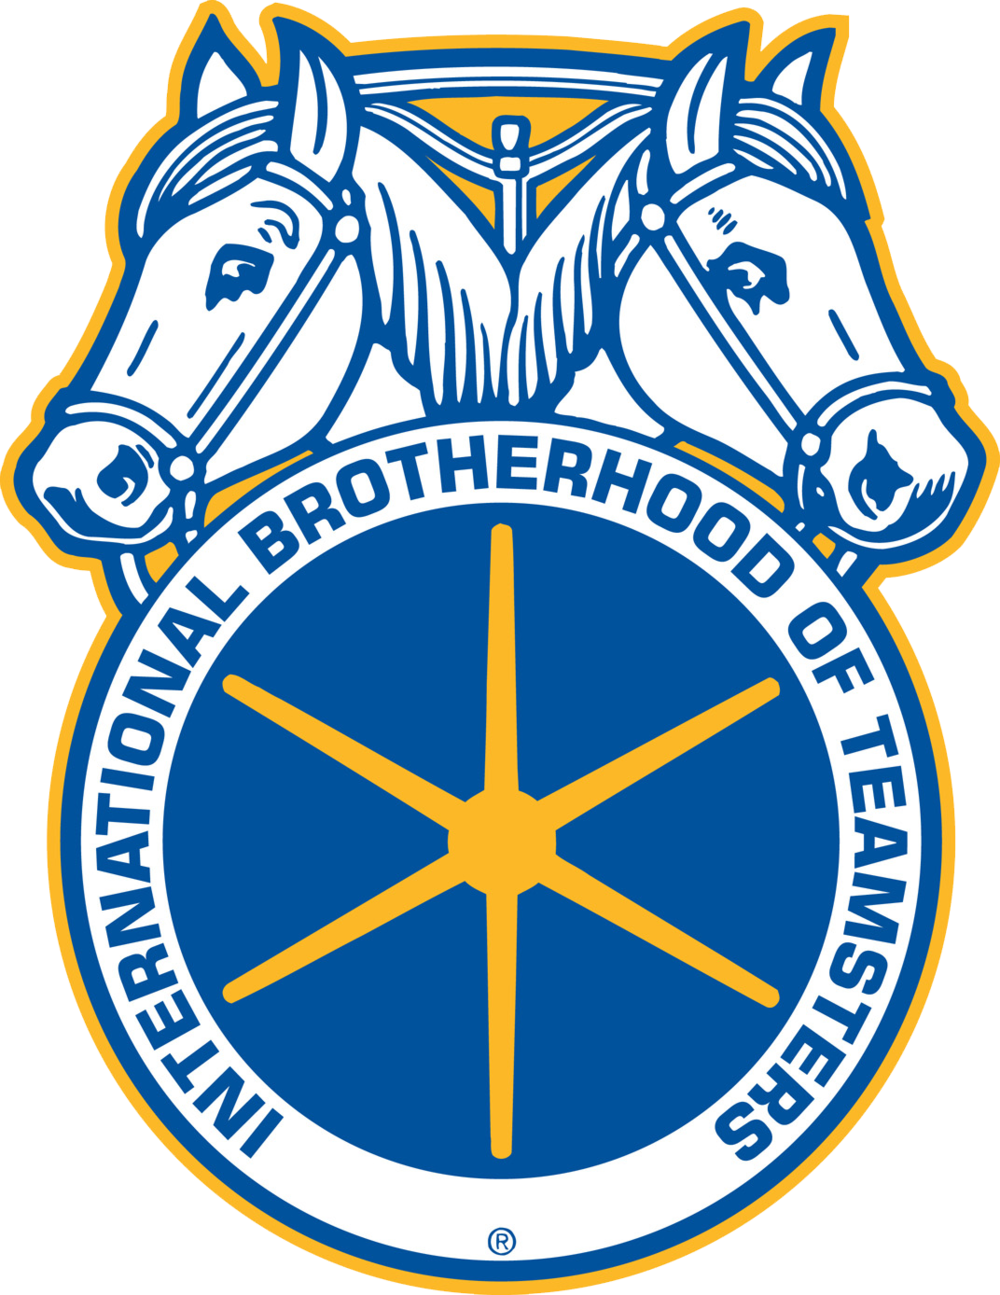 teamsters_logo-12.png